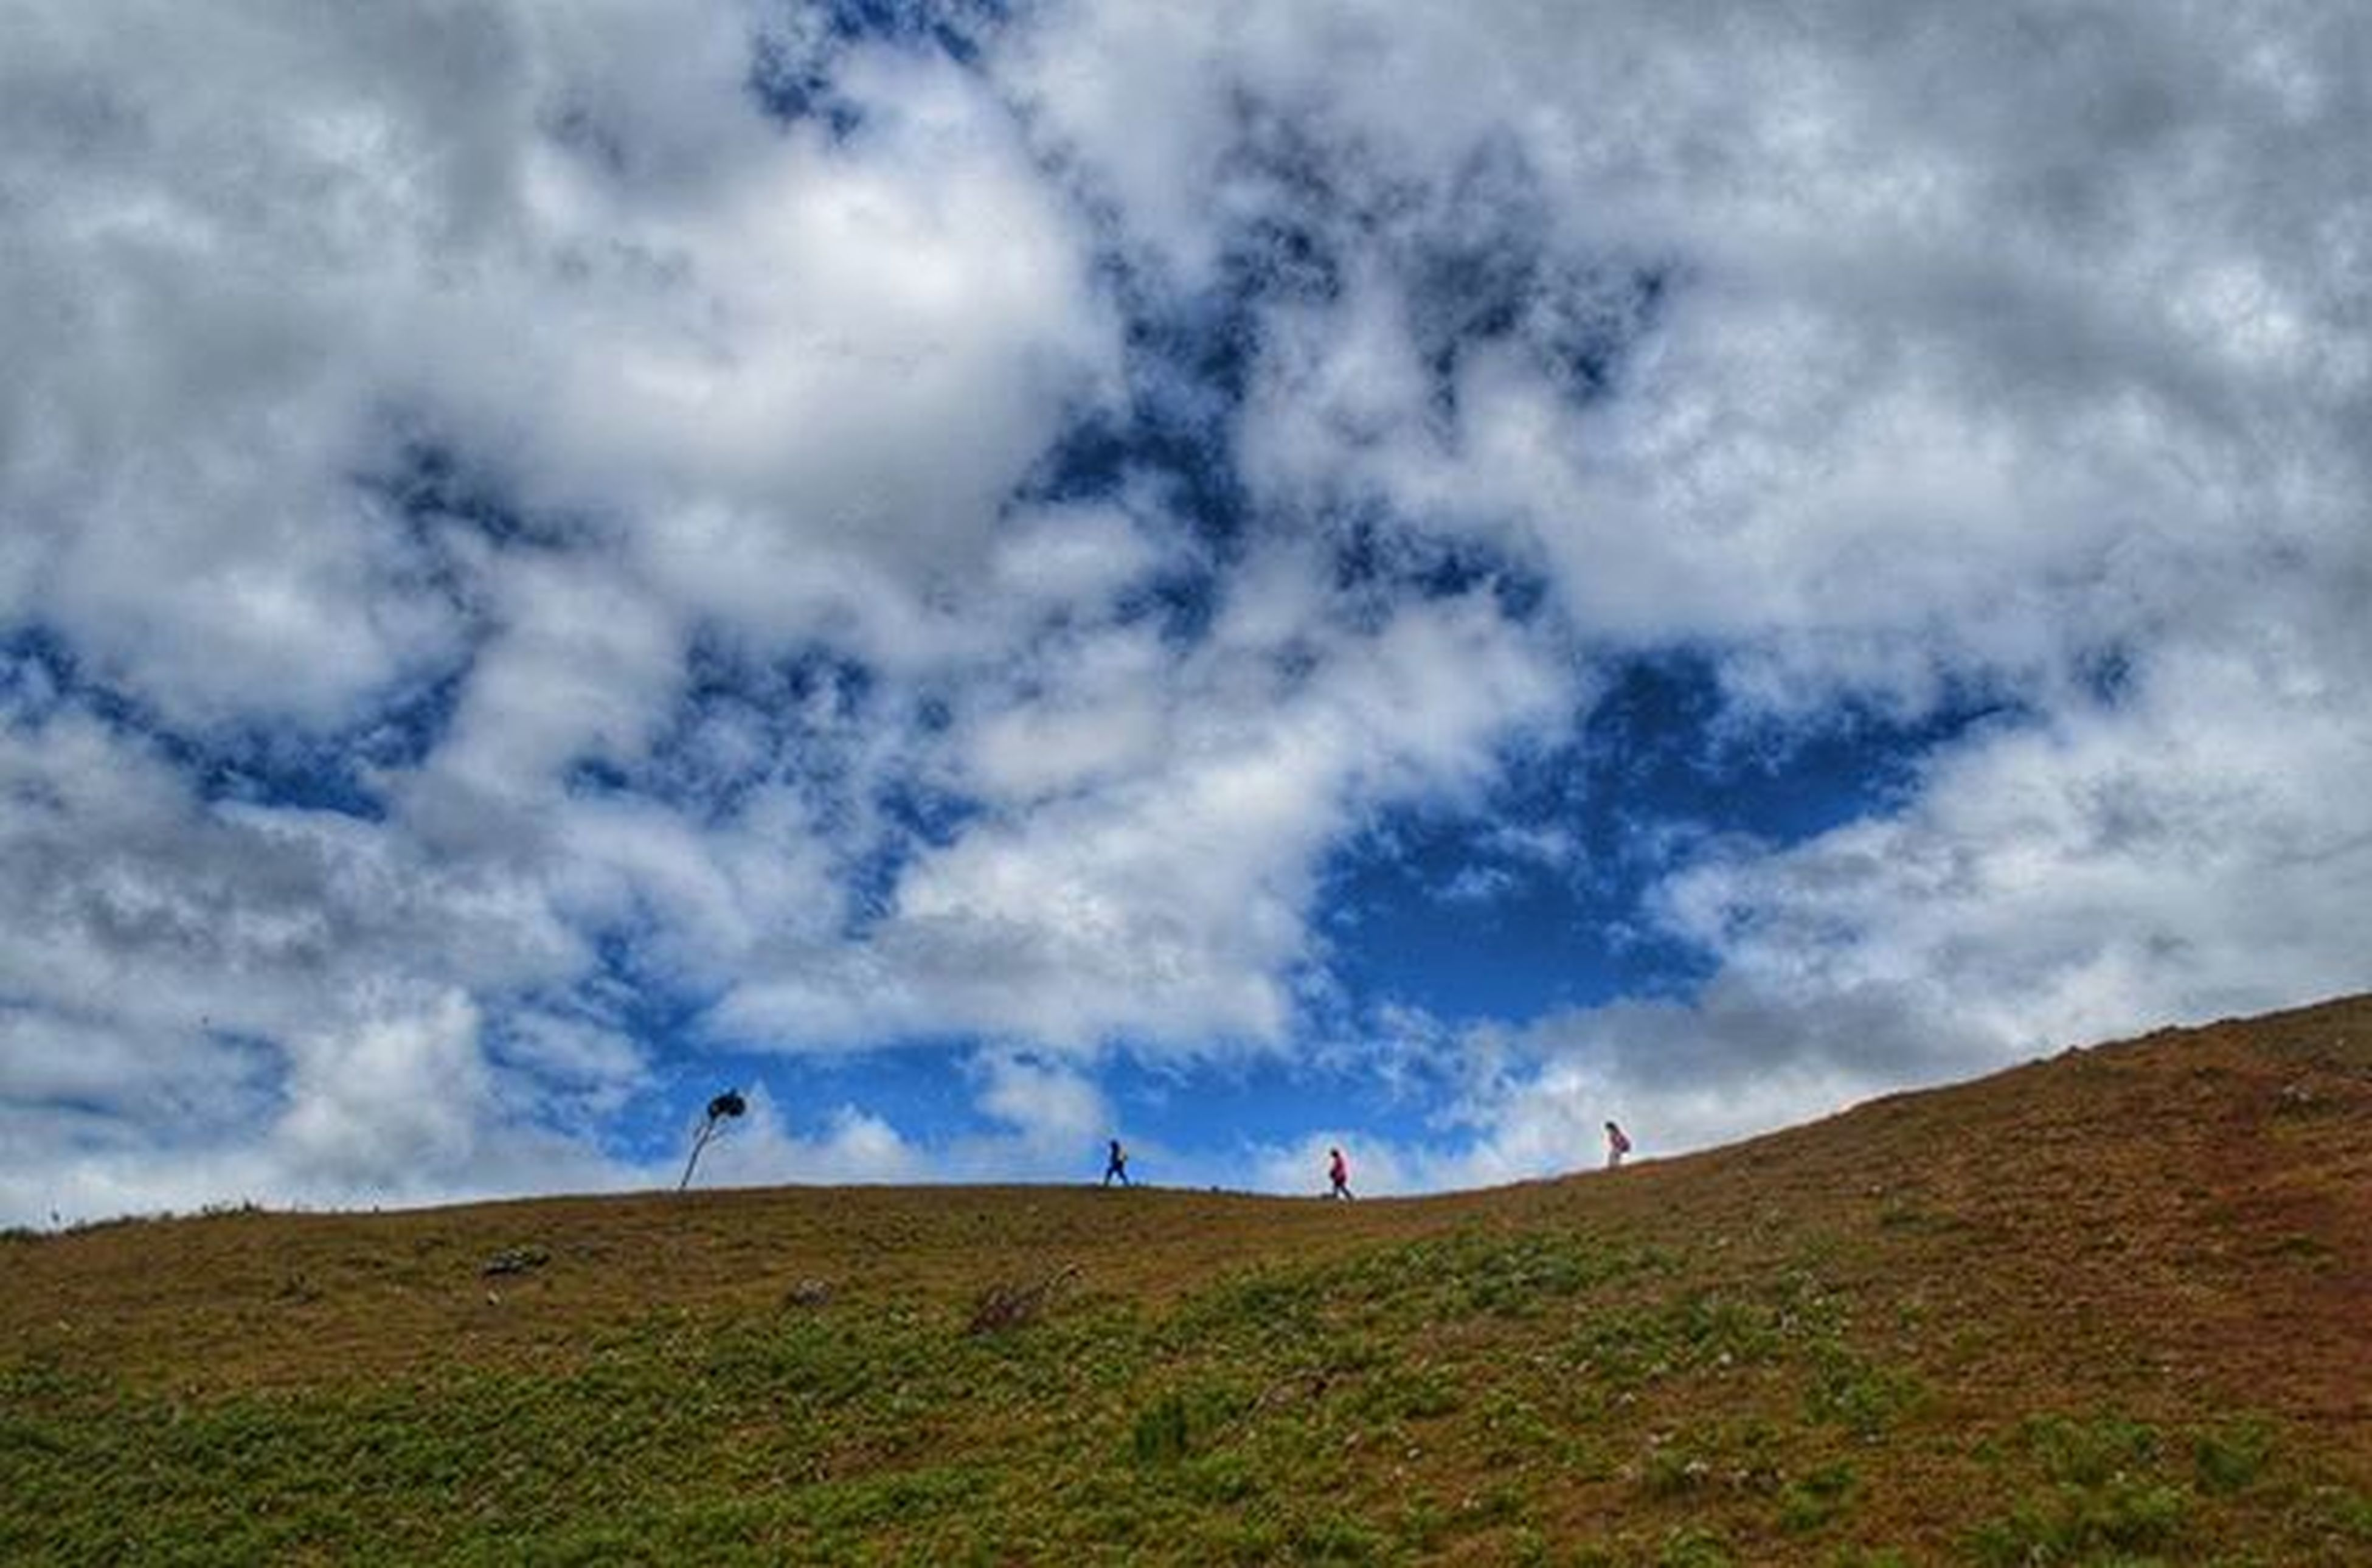 sky, cloud - sky, cloudy, grass, landscape, animal themes, tranquility, tranquil scene, field, scenics, nature, cloud, beauty in nature, grassy, day, one animal, non-urban scene, low angle view, weather, hill